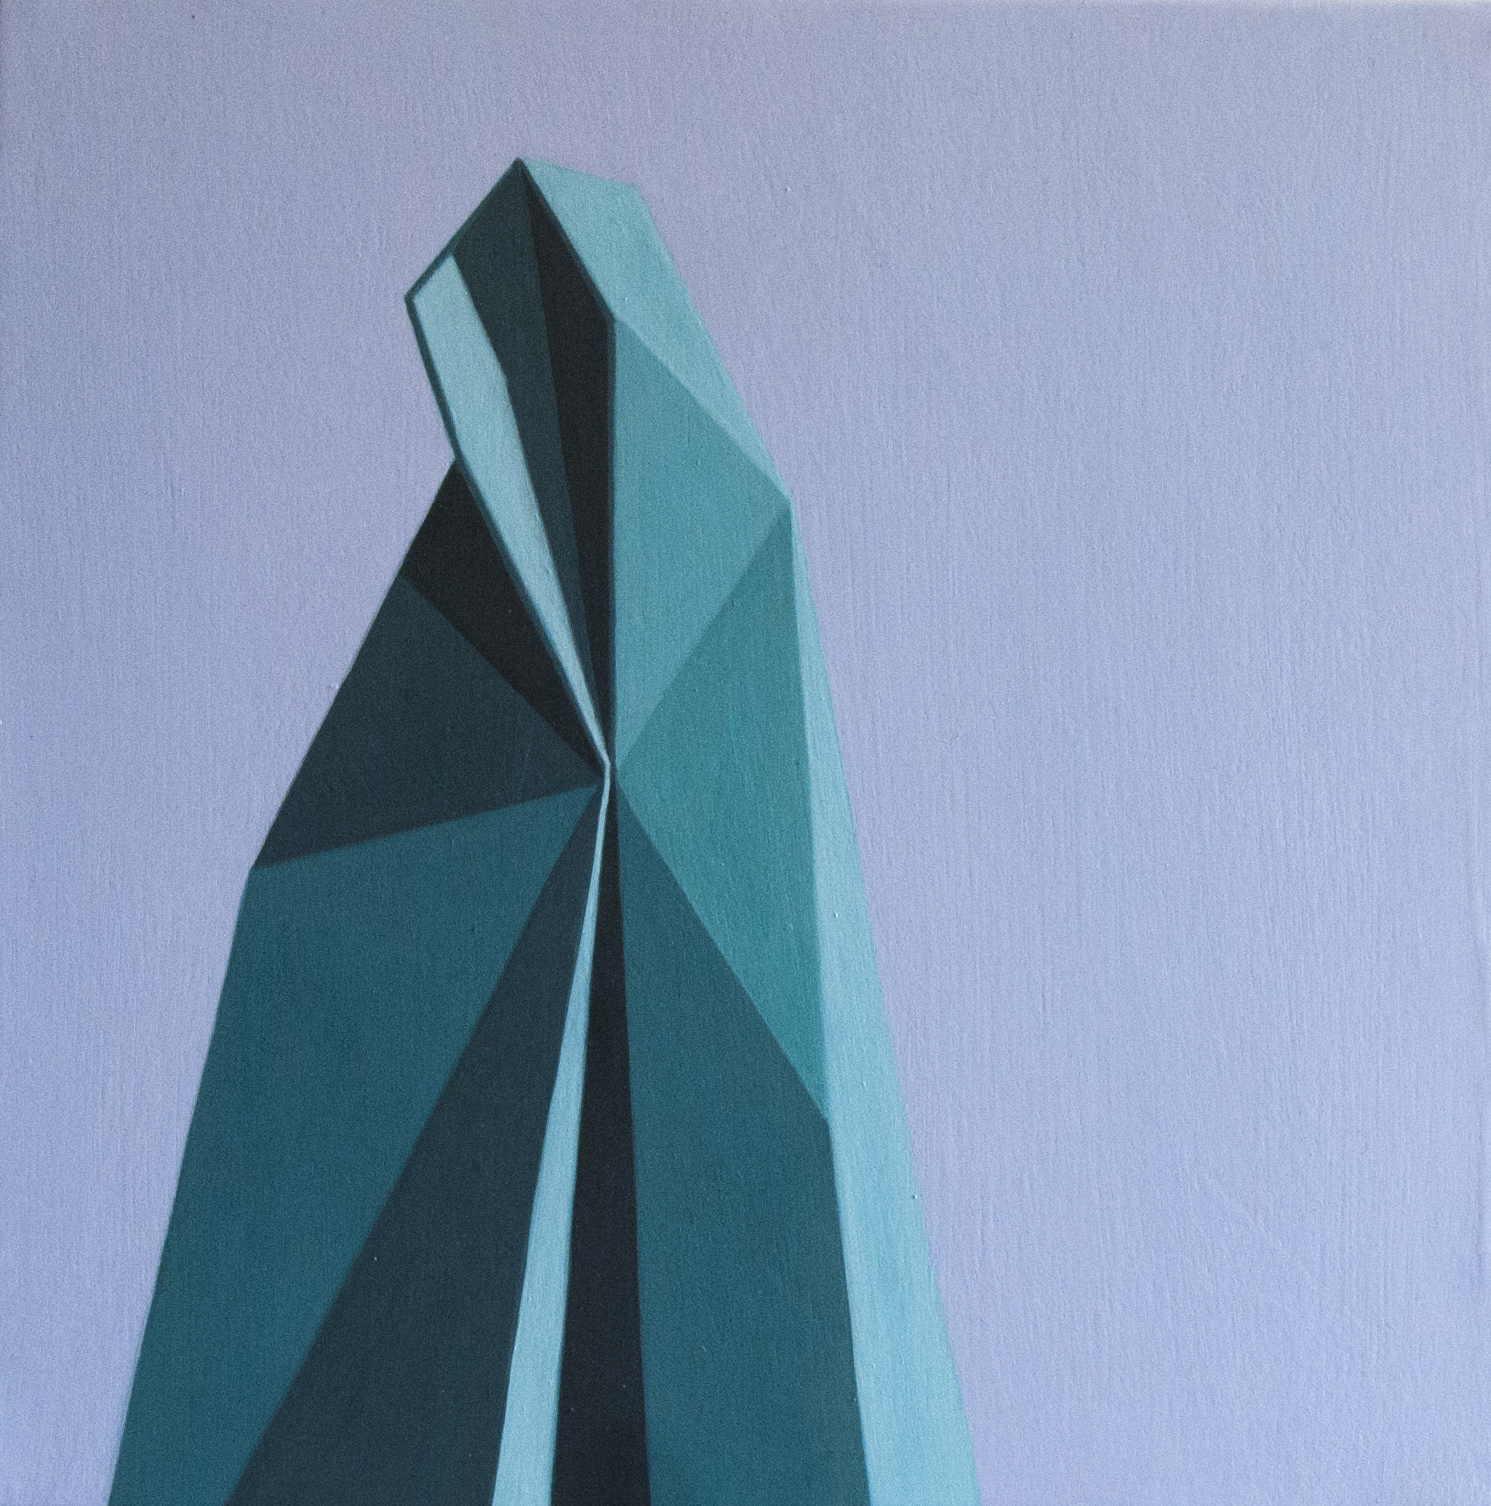 Geometric Abstract Painting By The Artist Roberto Chessa